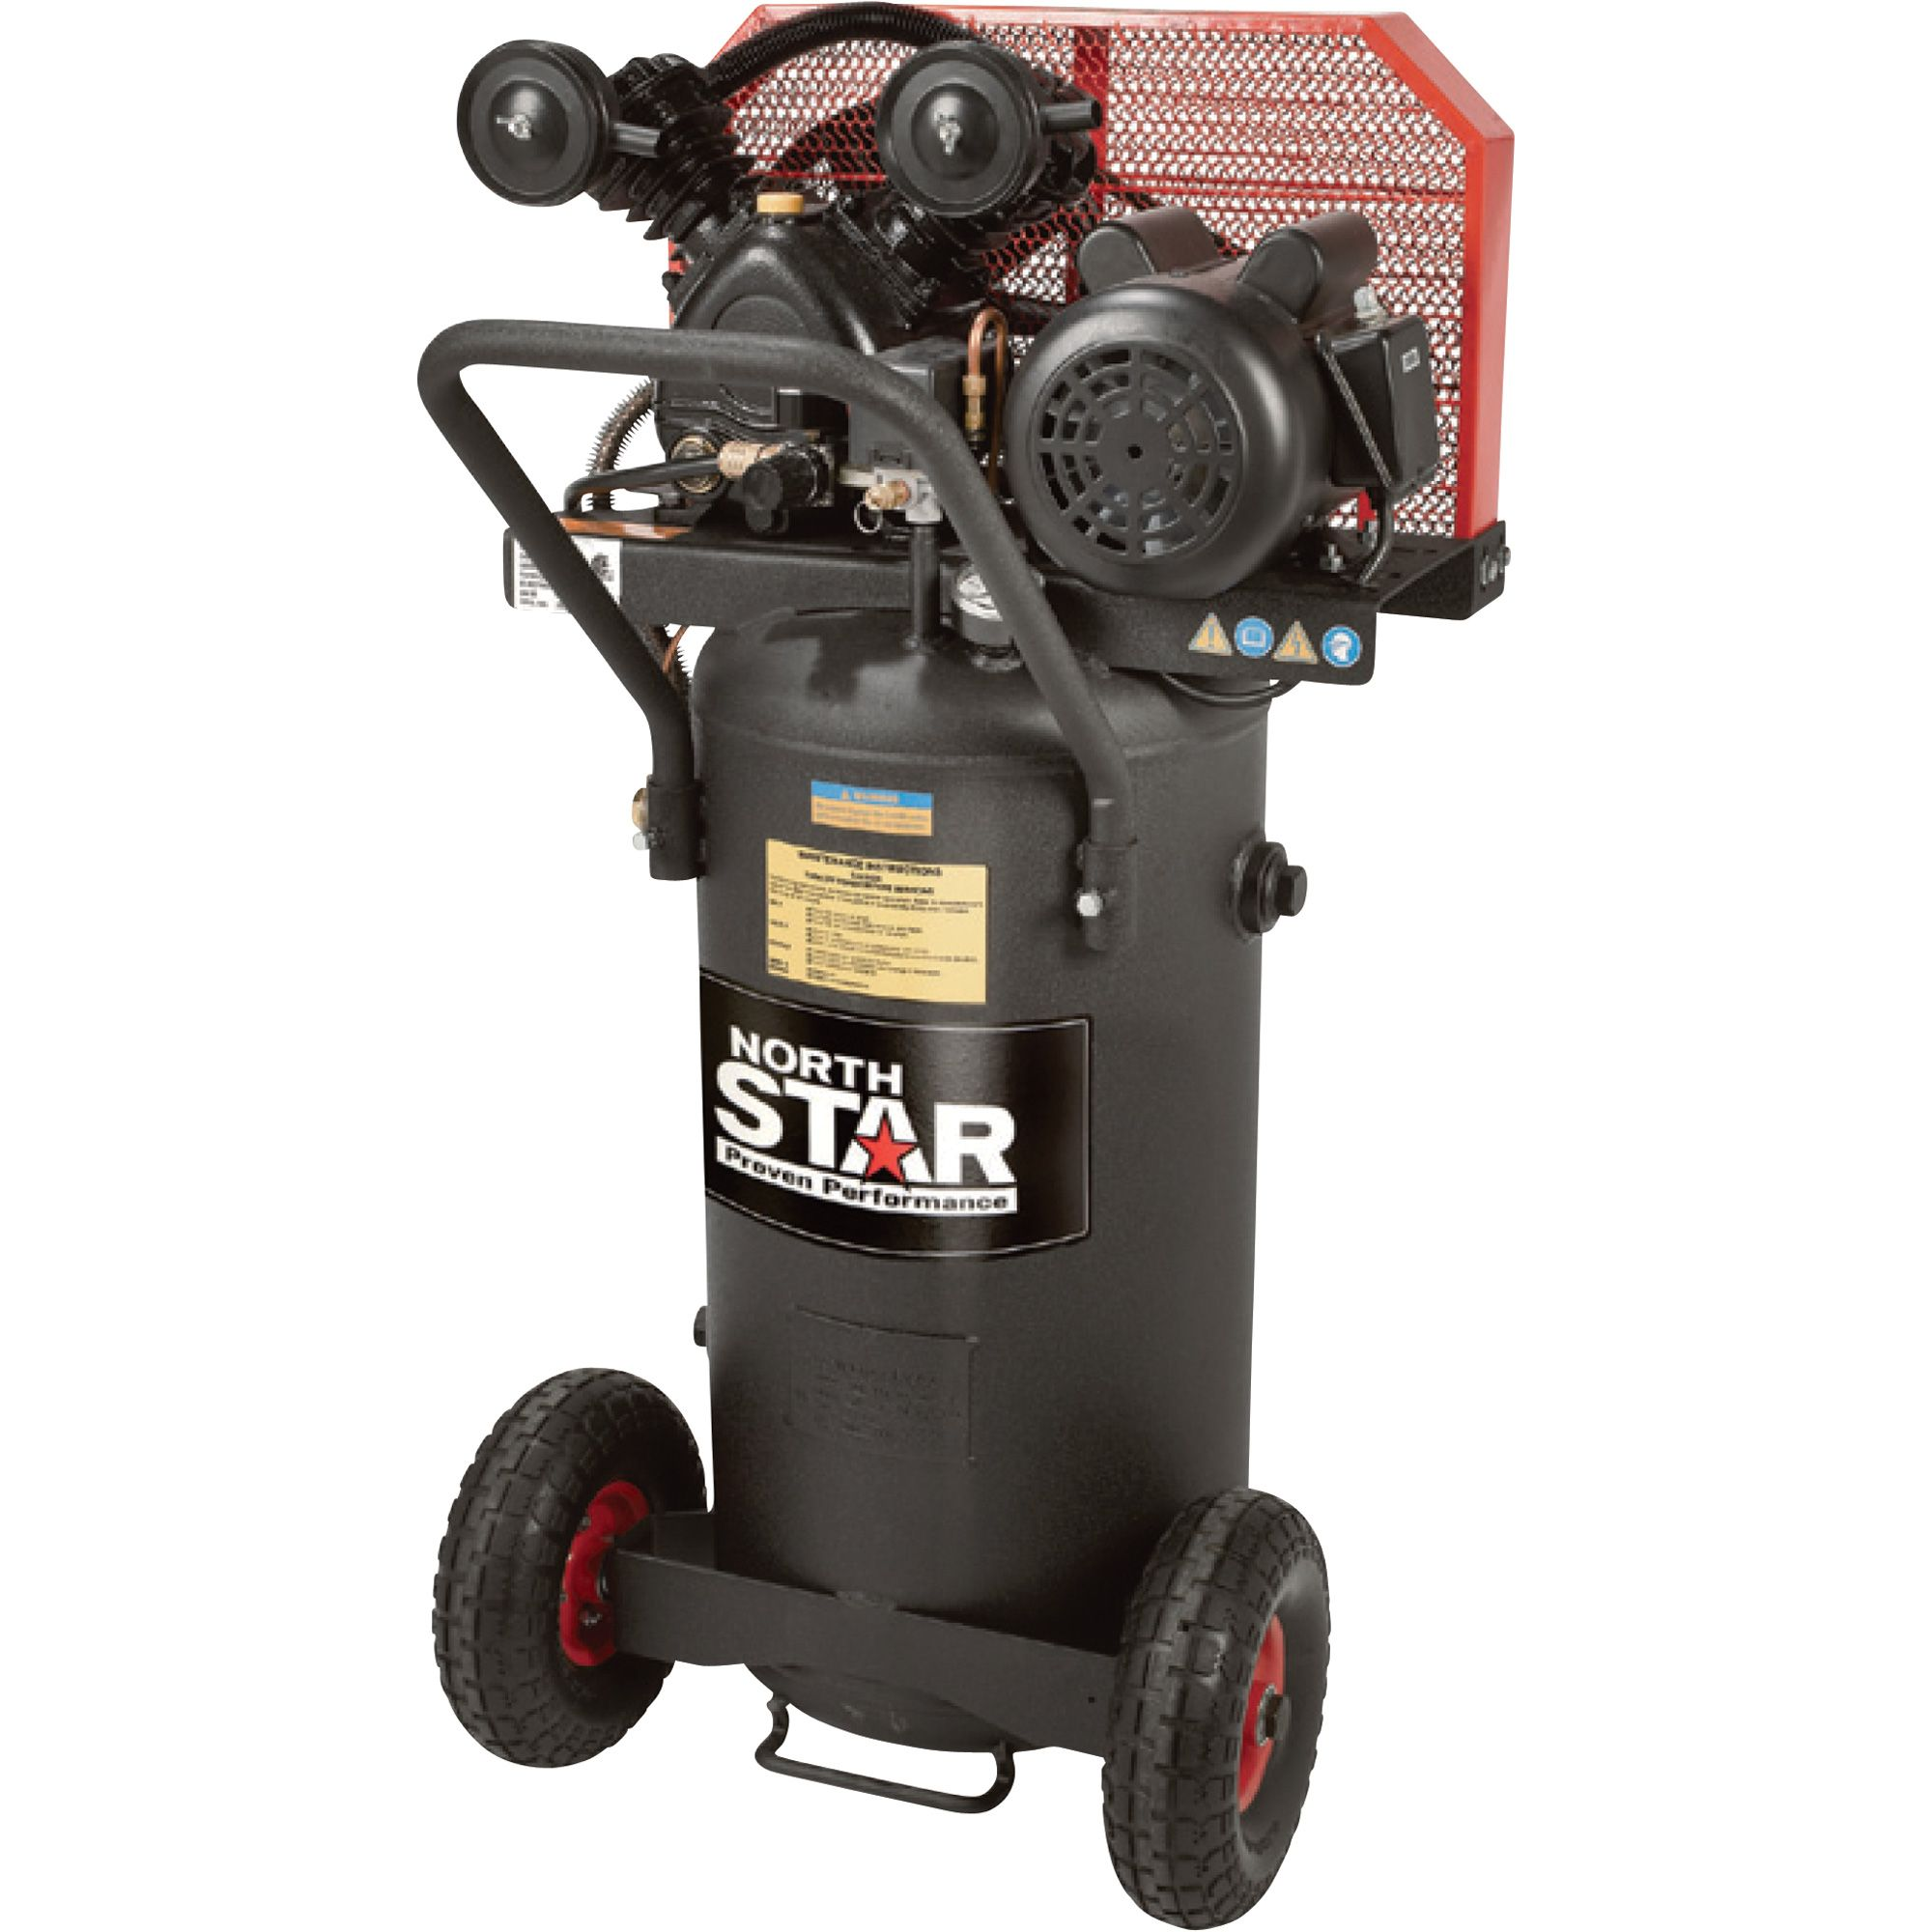 NorthStar SingleStage Portable Electric Air Compressor 2